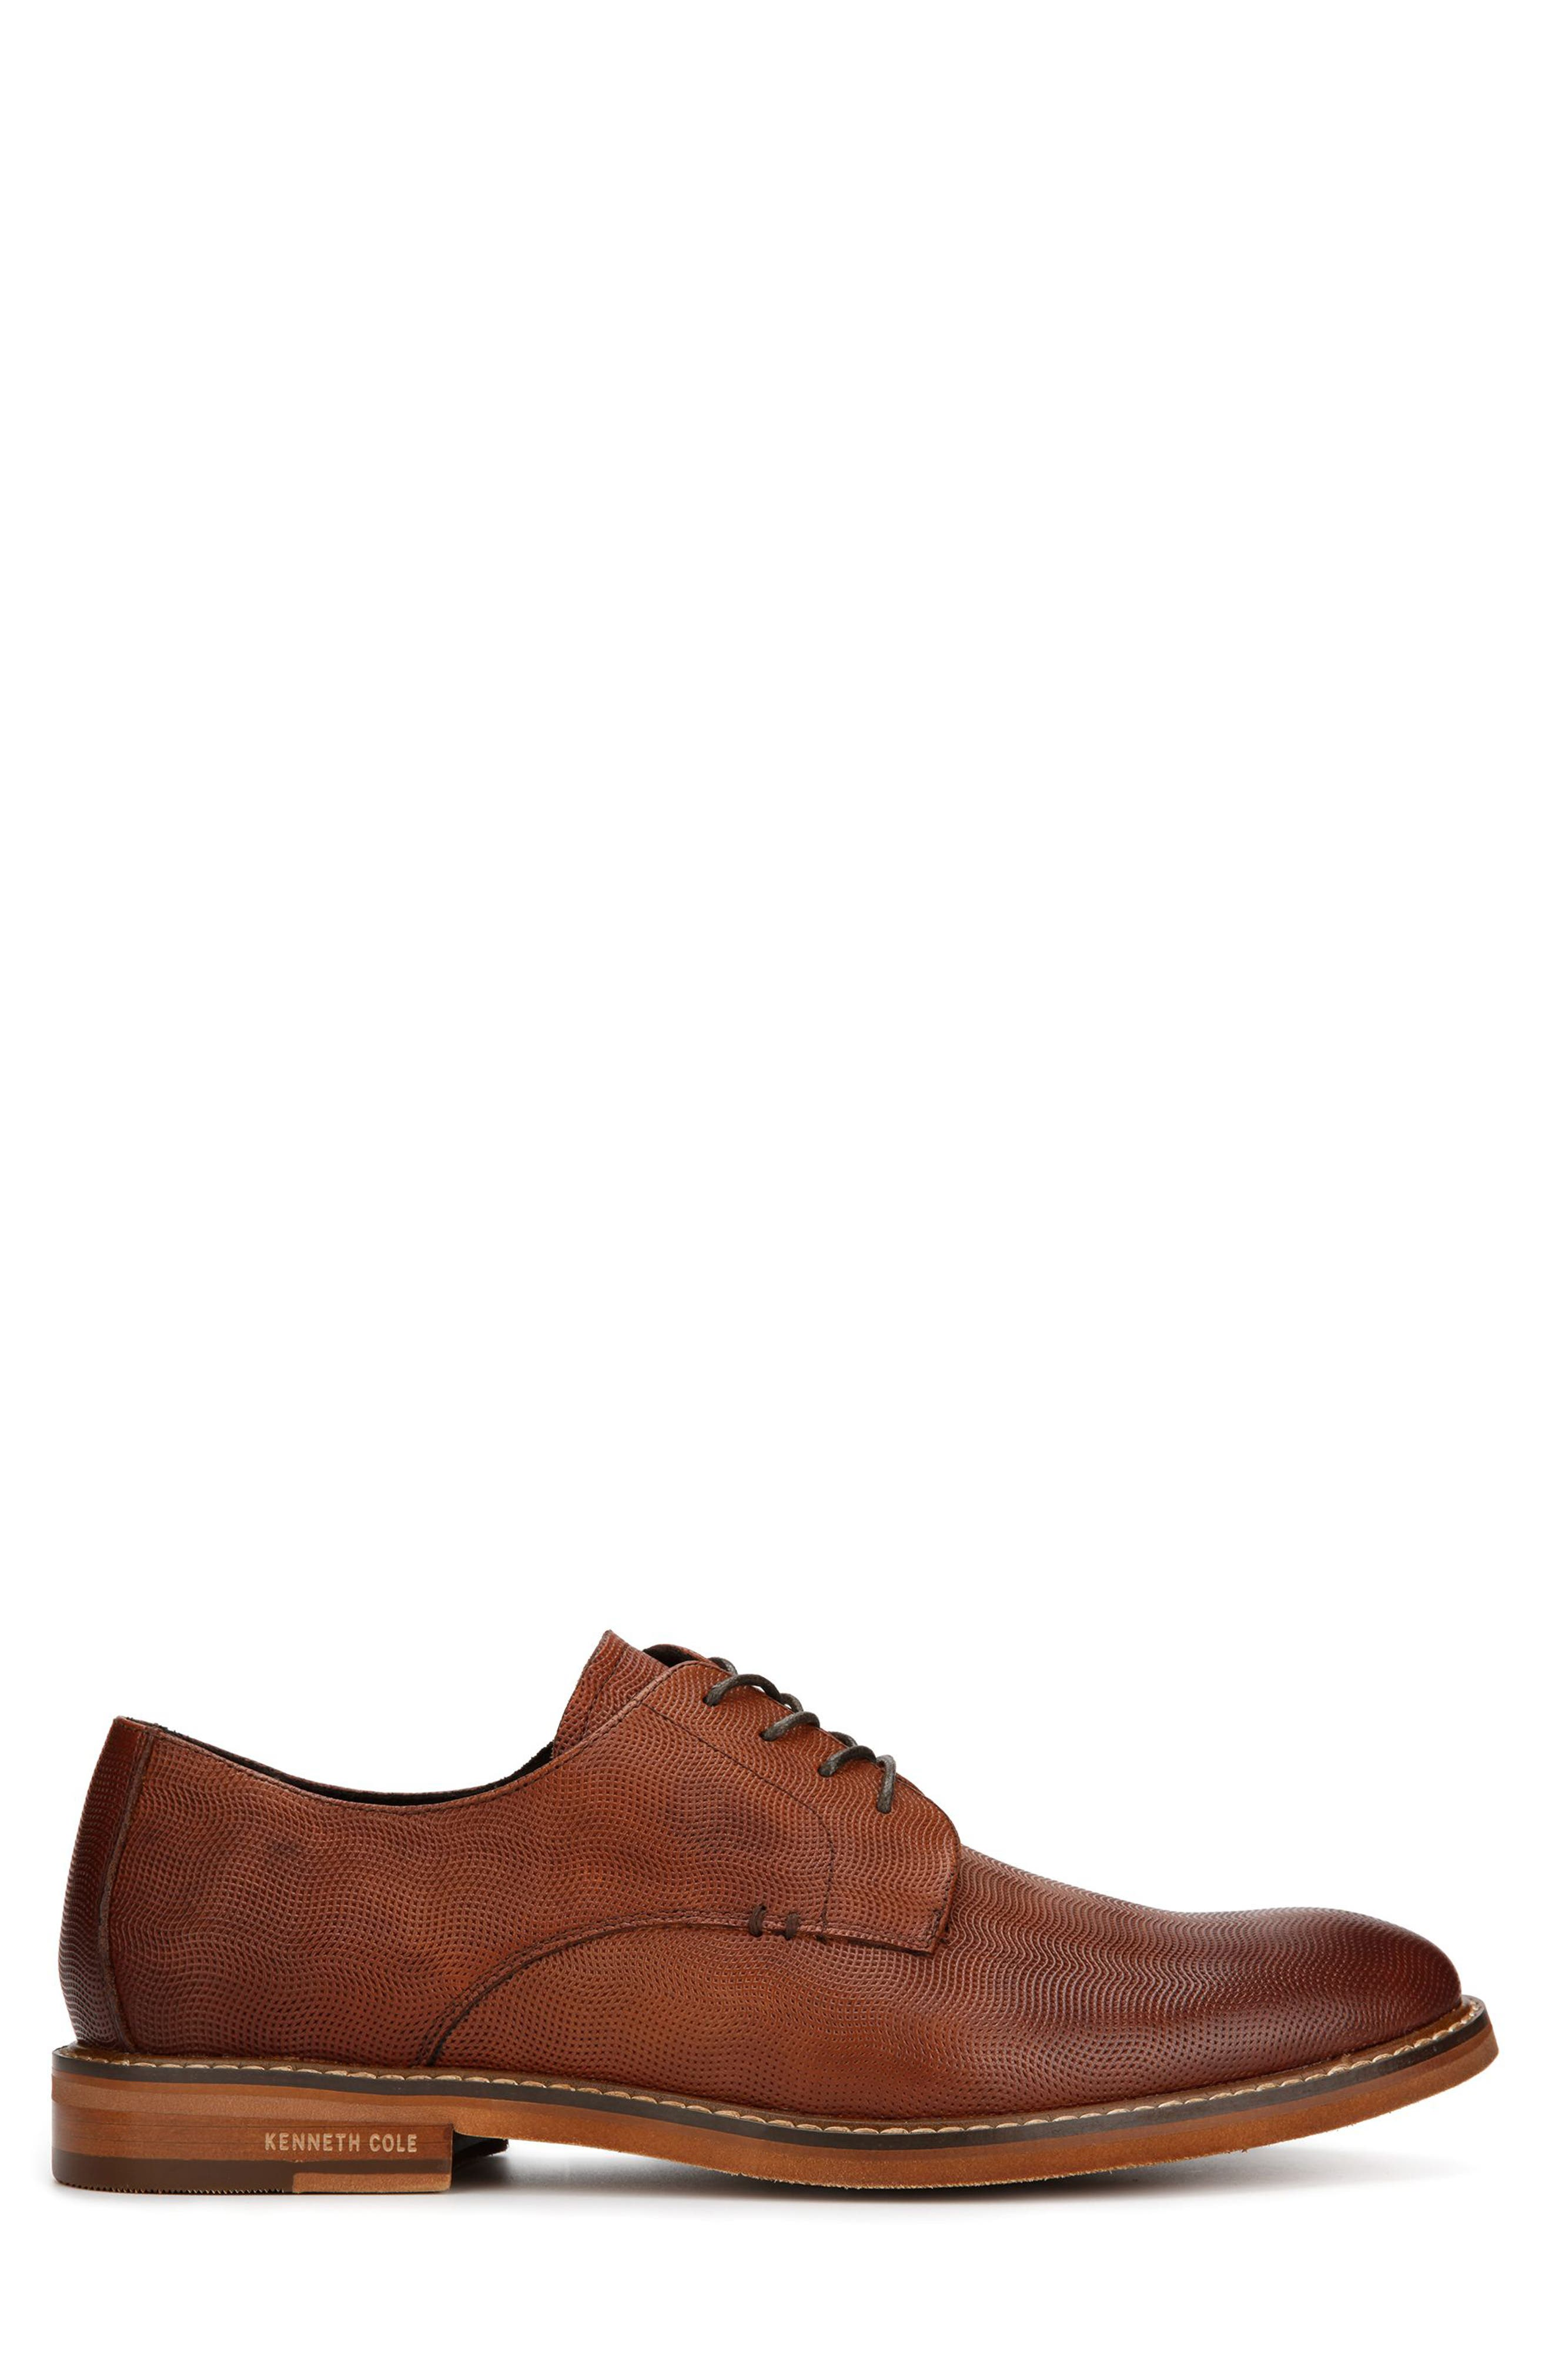 KENNETH COLE NEW YORK, Dance Textured Plain Toe Derby, Alternate thumbnail 2, color, COGNAC EMBOSSED LEATHER